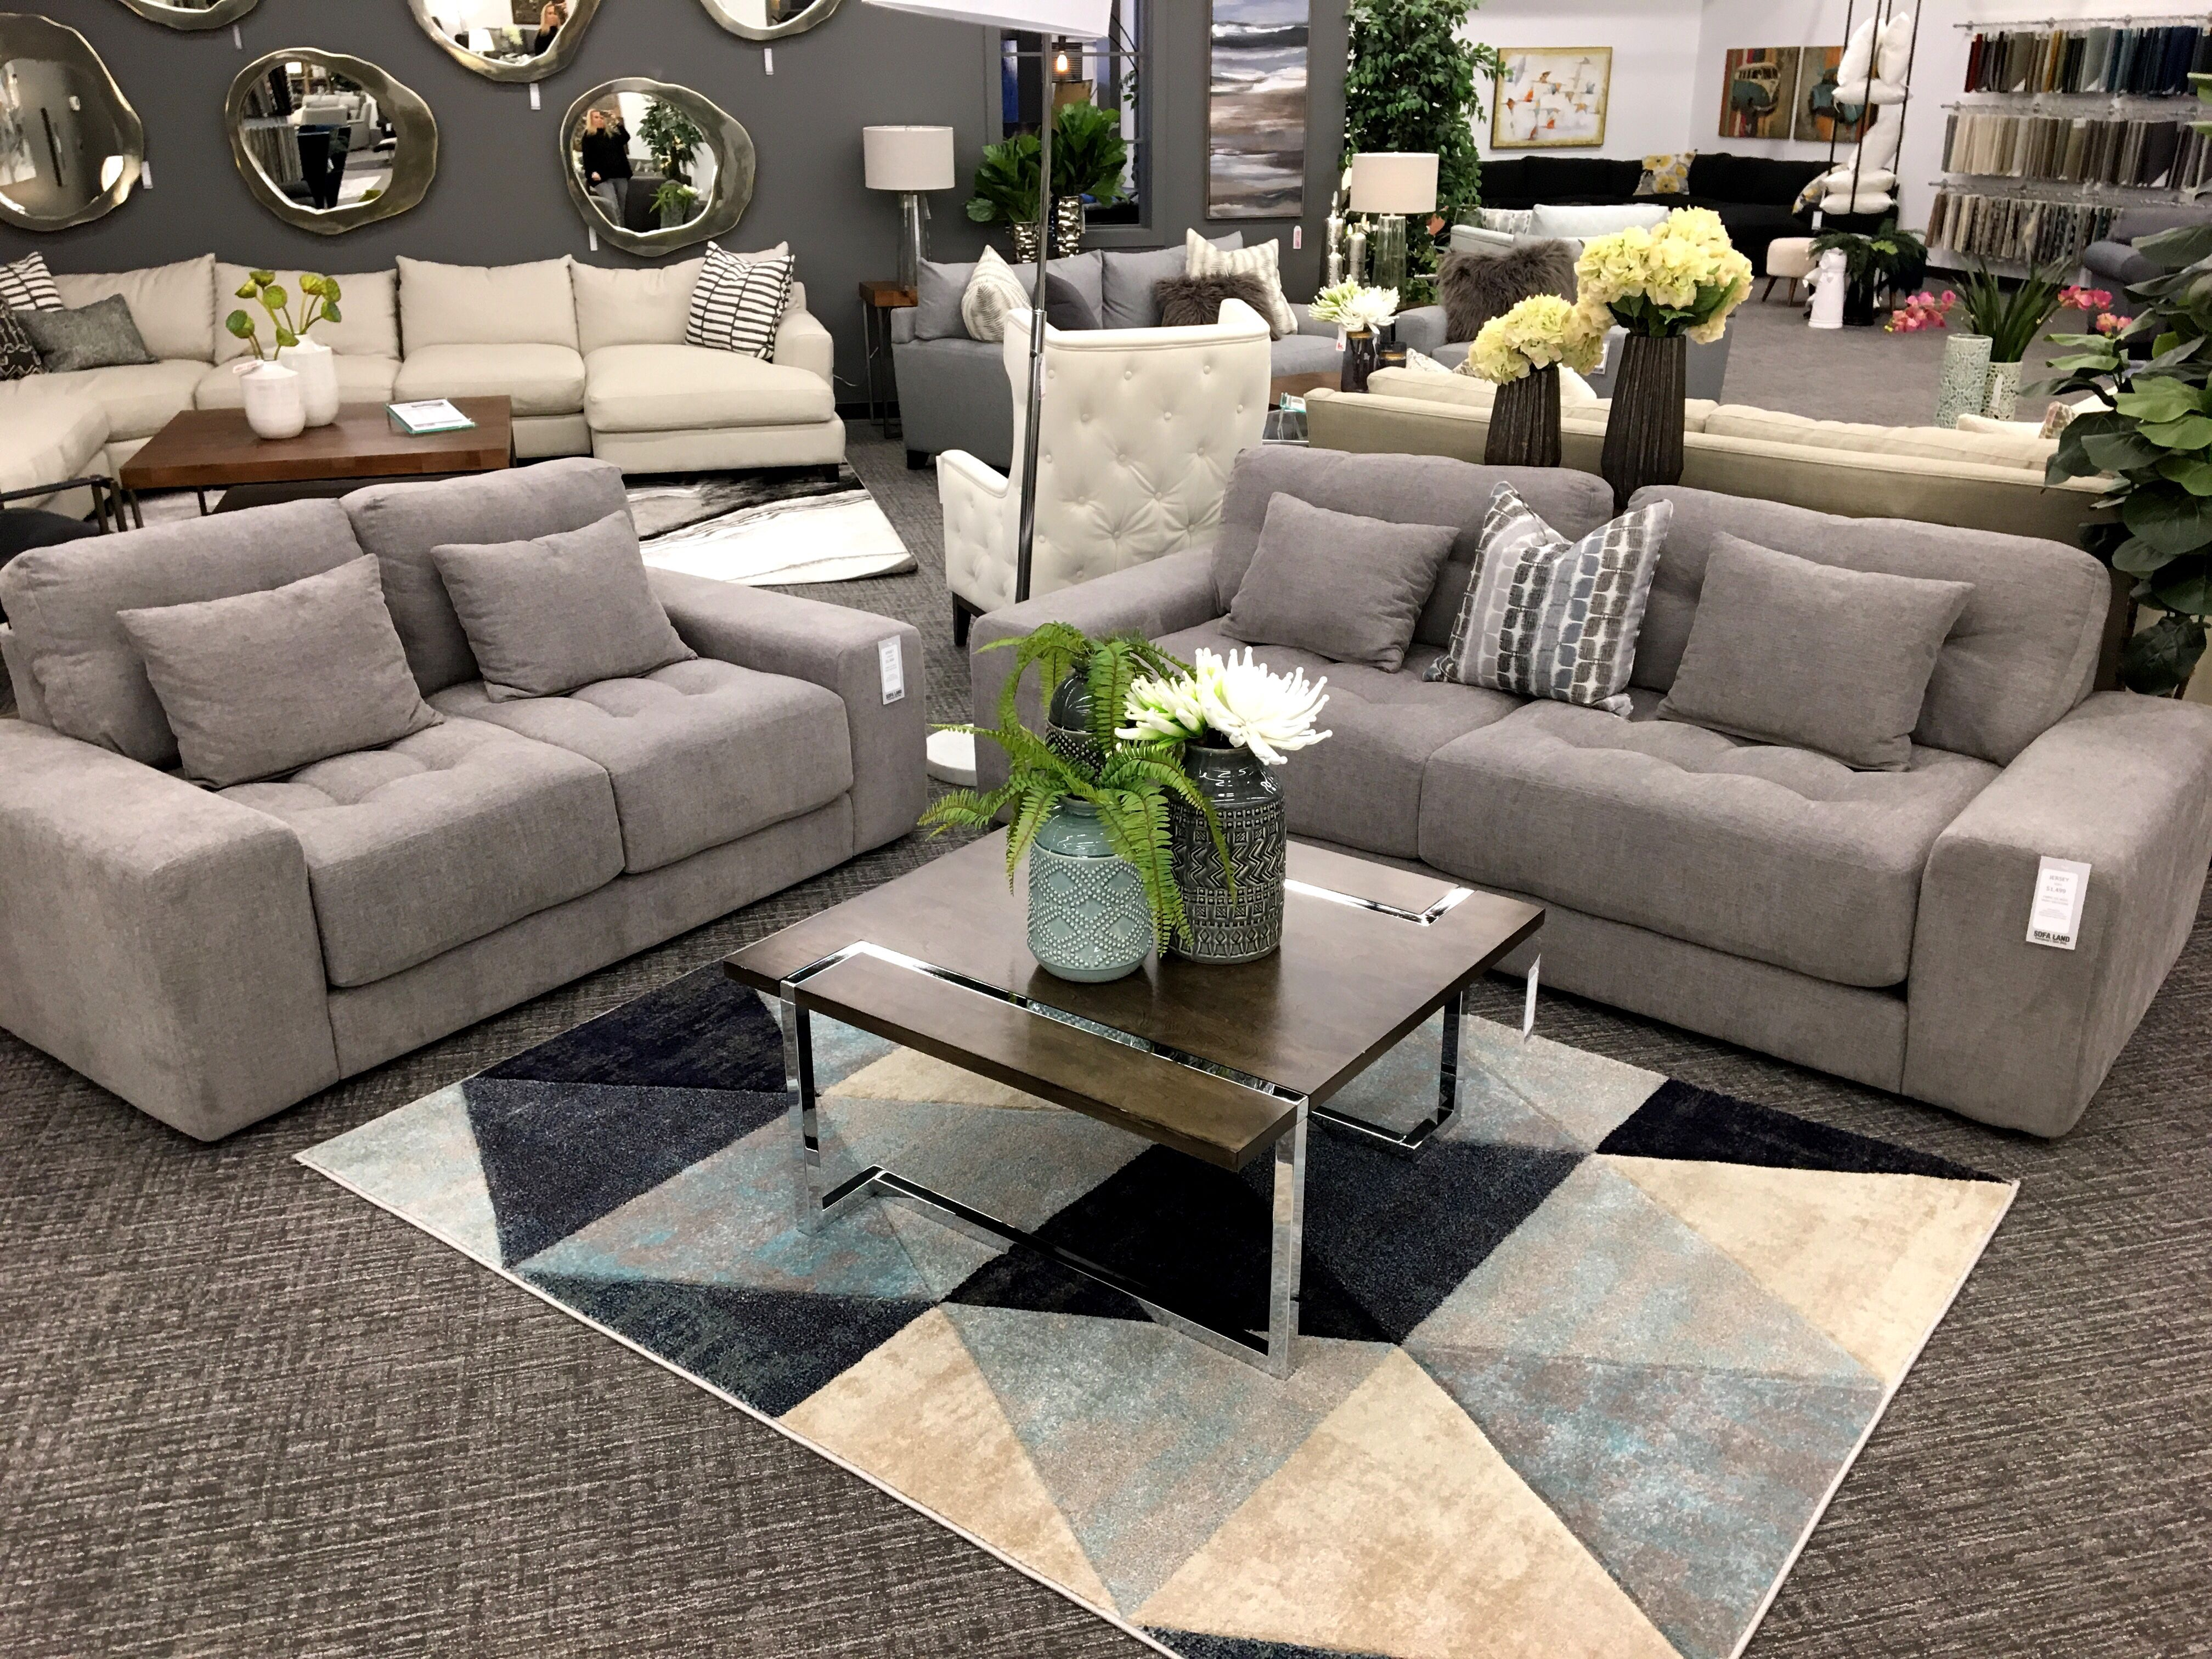 Jersey Sofa Decor Small Space Seating Sofas For Small Spaces